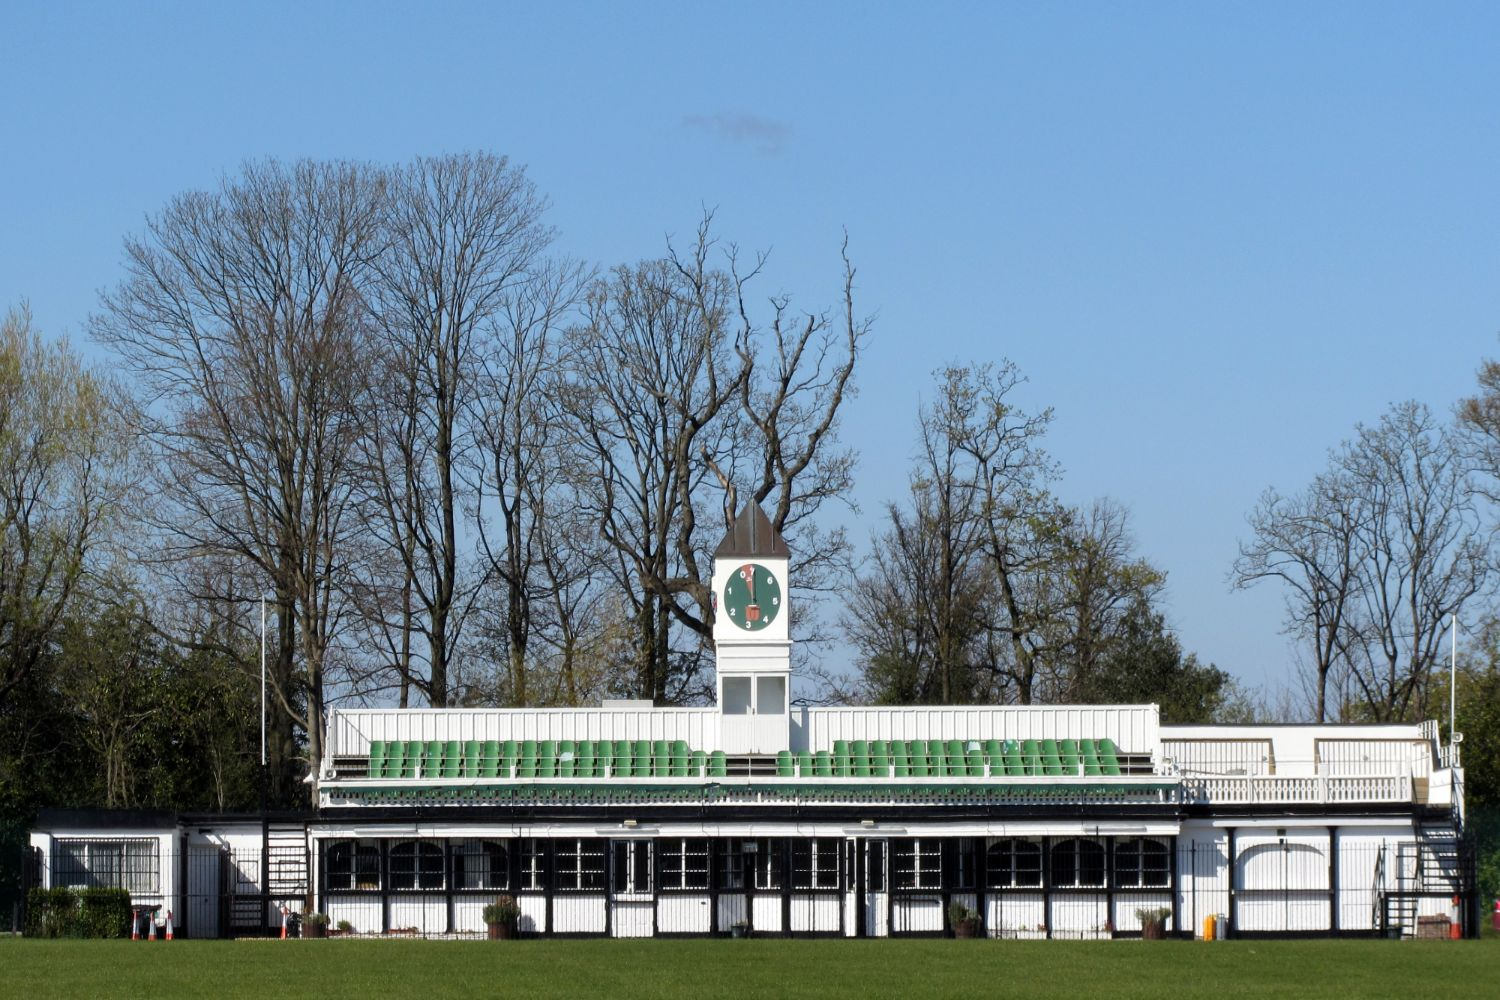 Polo stand, Phoenix Park